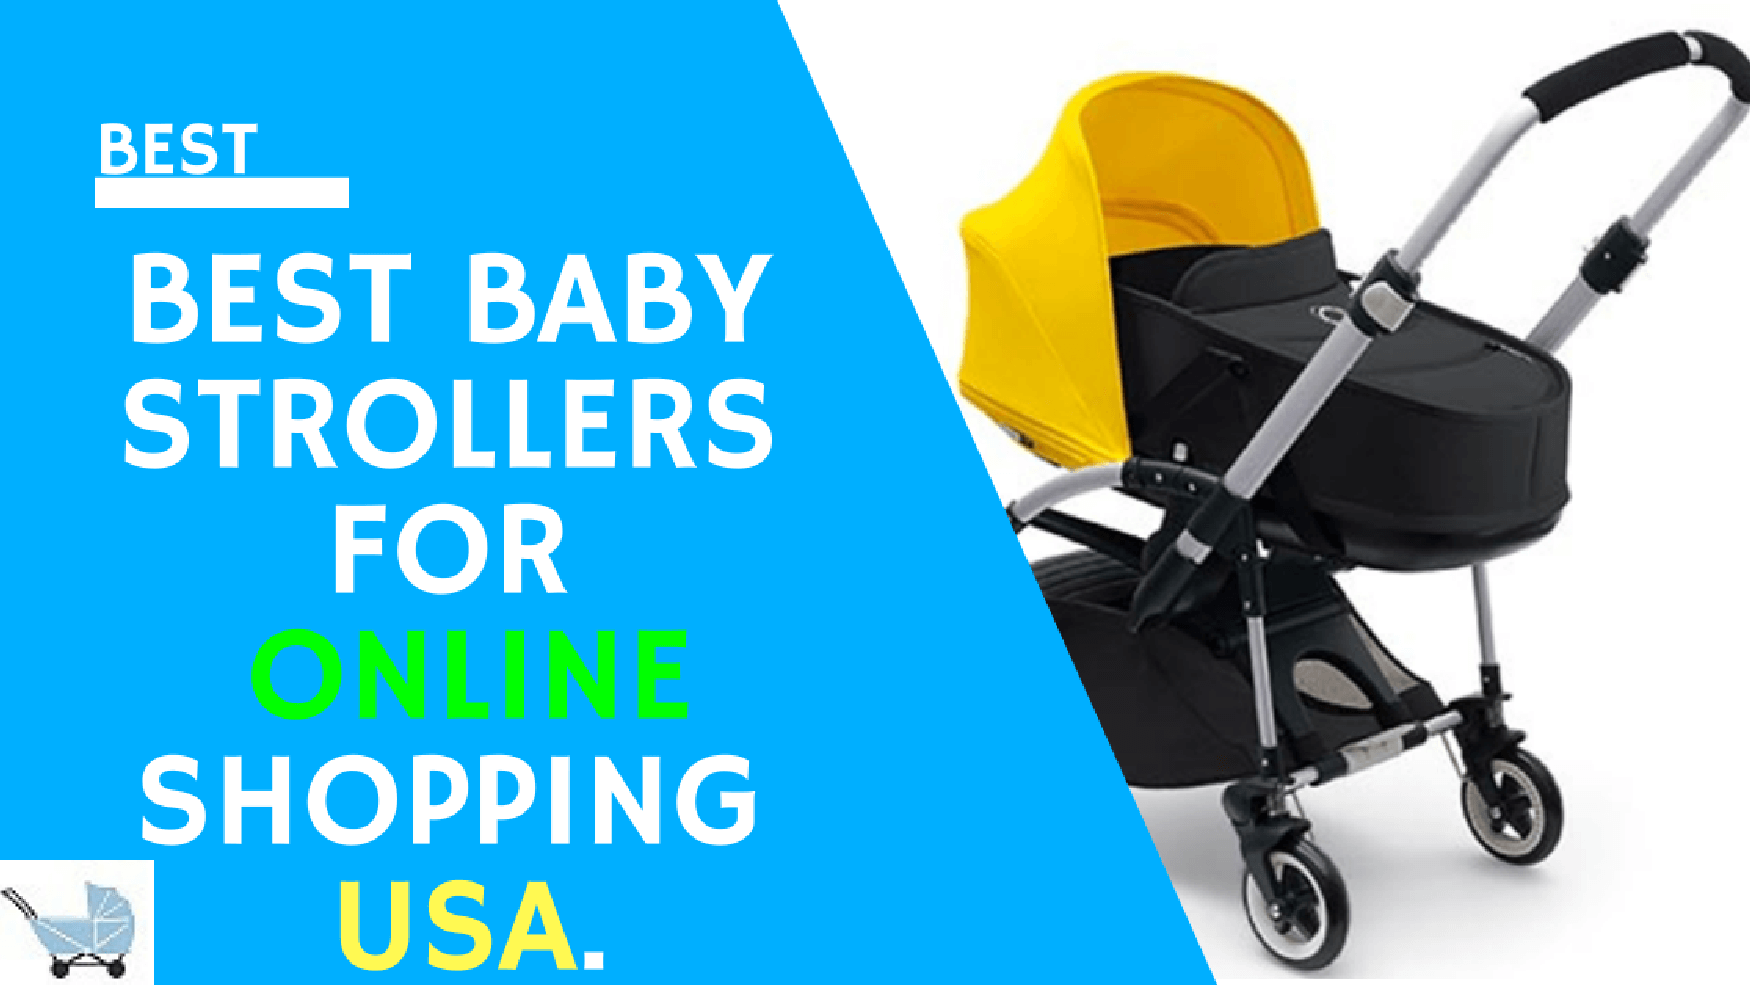 Yoyo Baby Stroller Usa Best Baby Strollers For Online Shopping Usa 2019